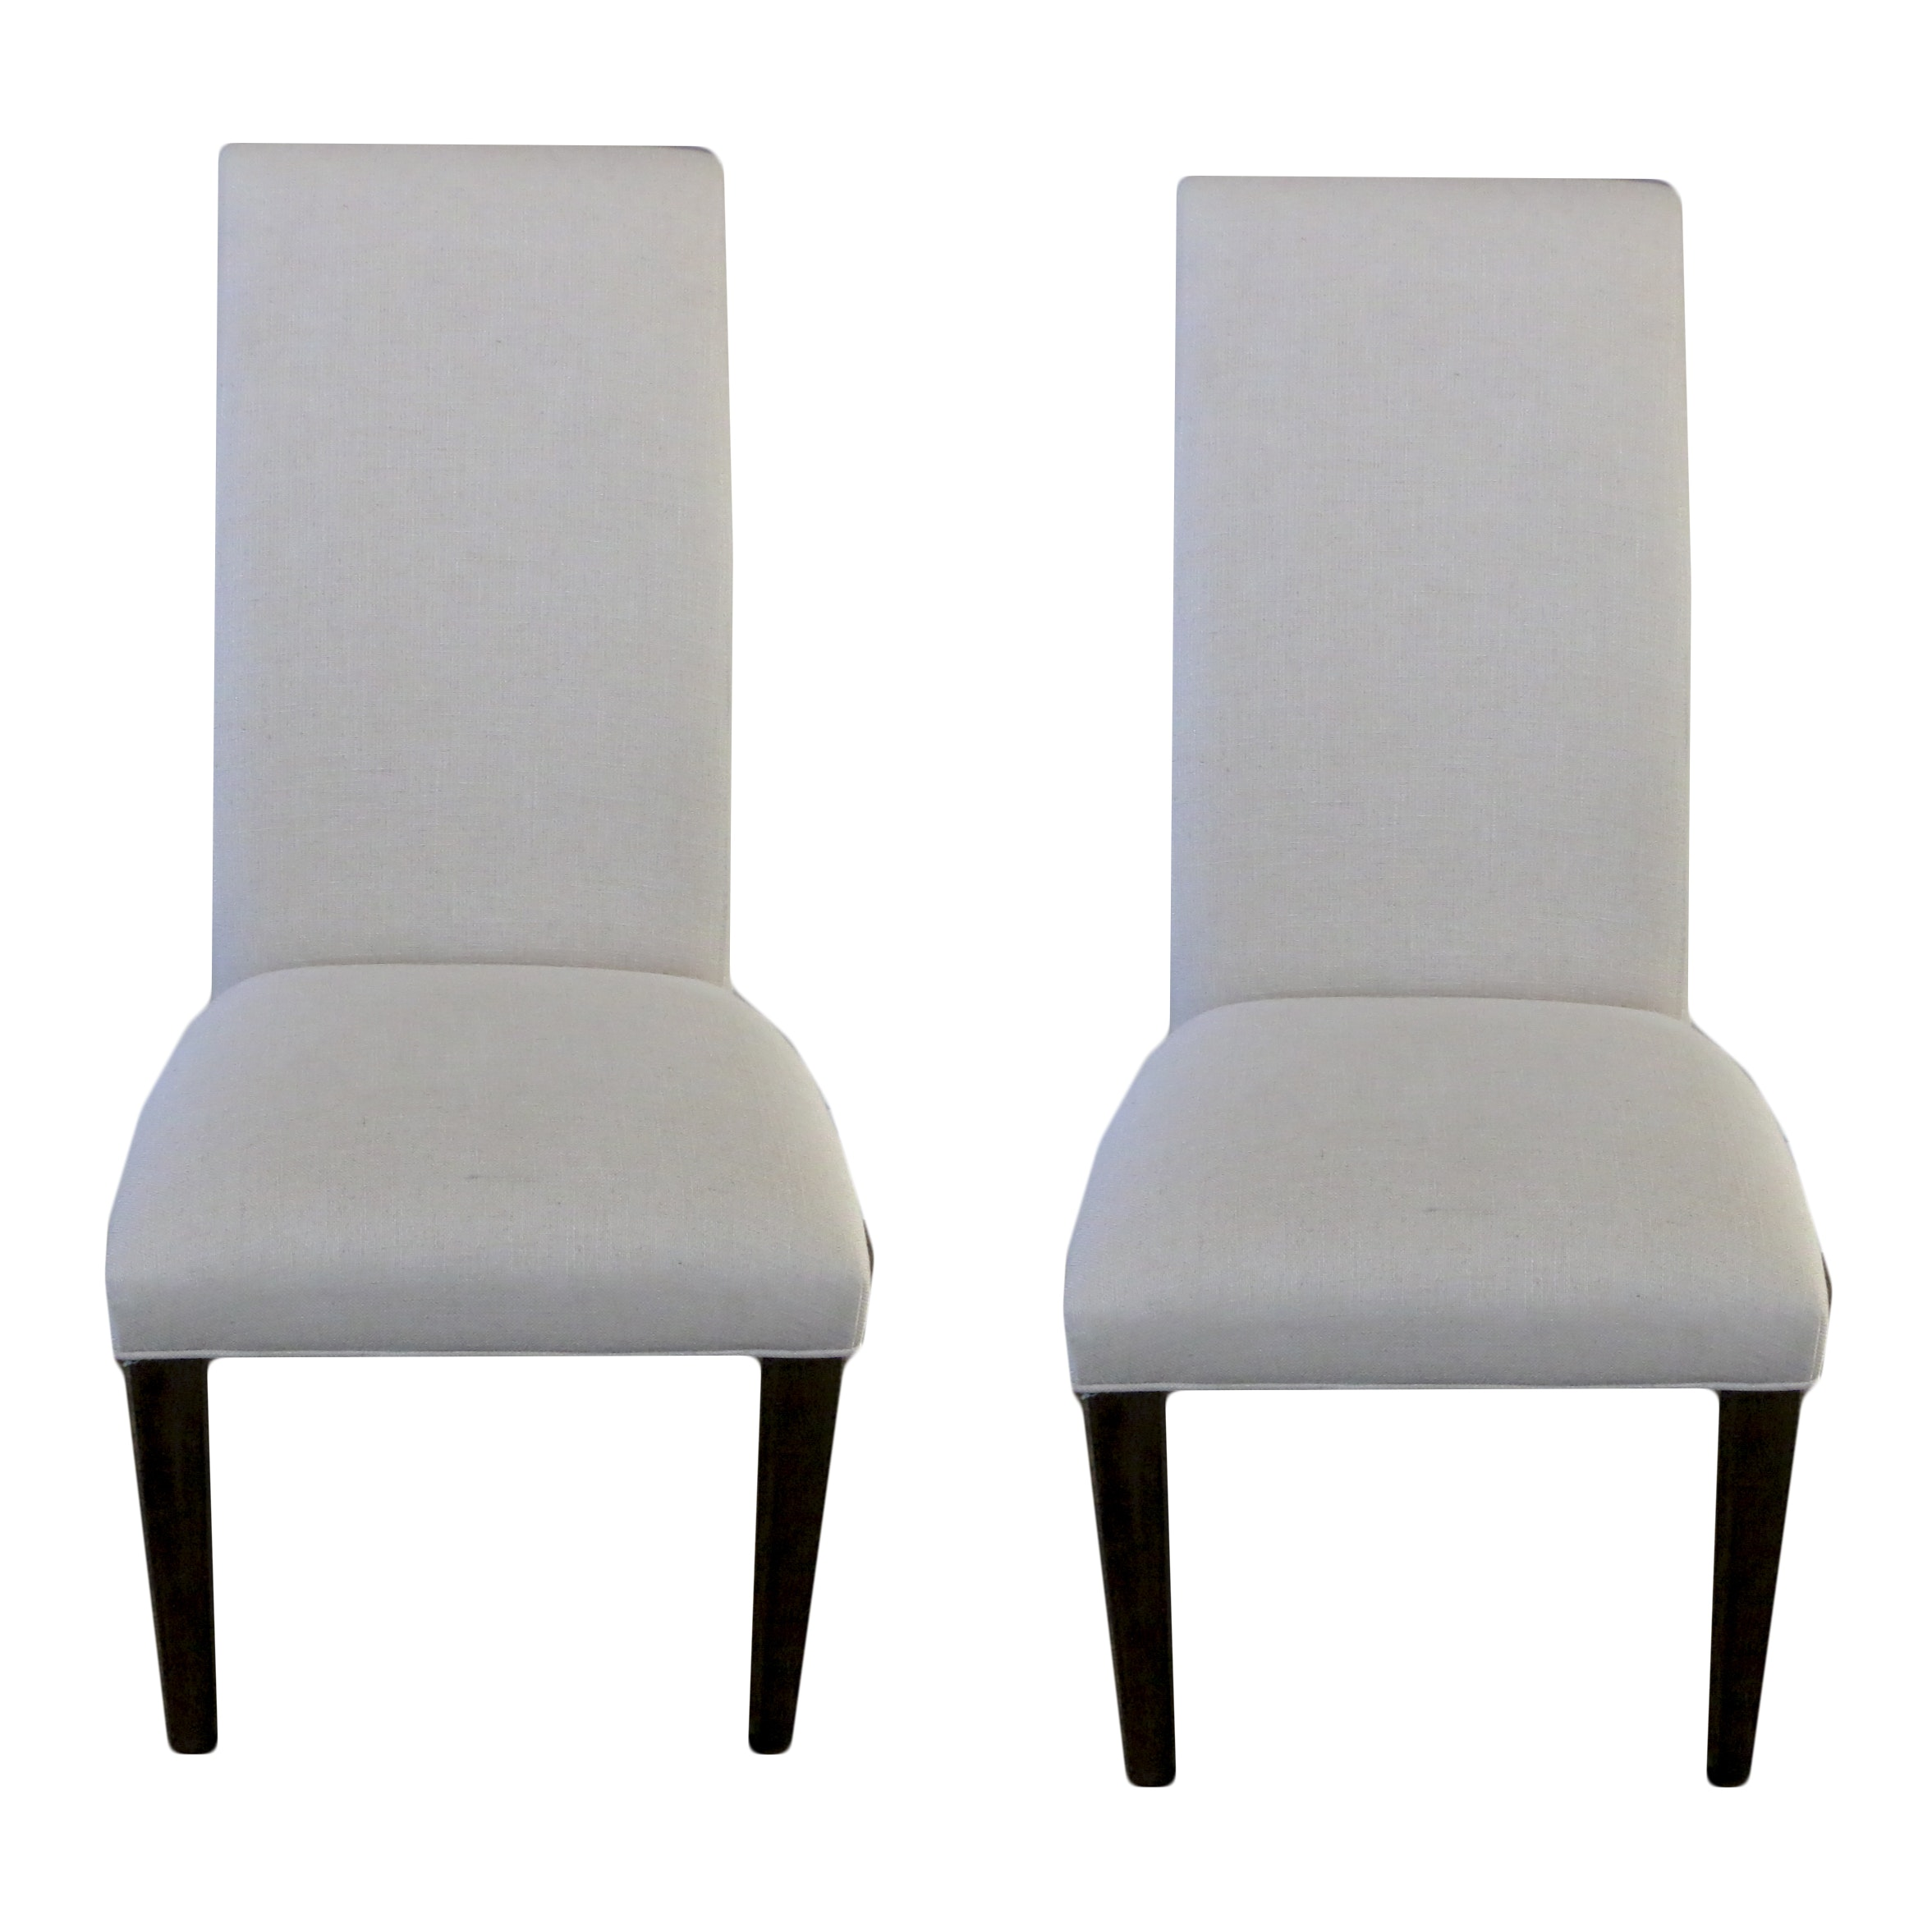 Upholstered High Back Side Chairs by Universal